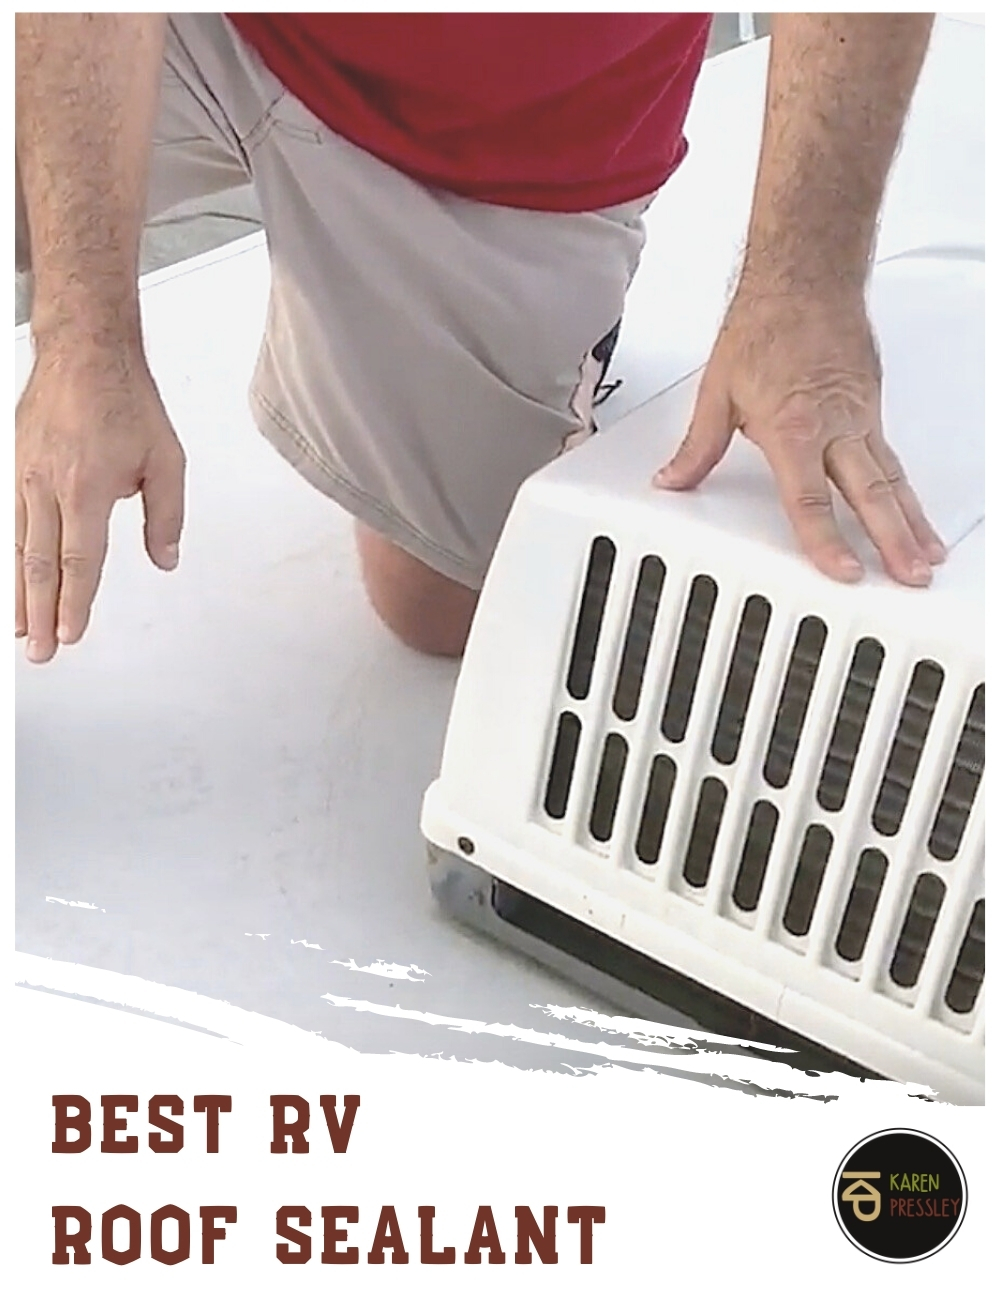 what is the best rv roof sealant